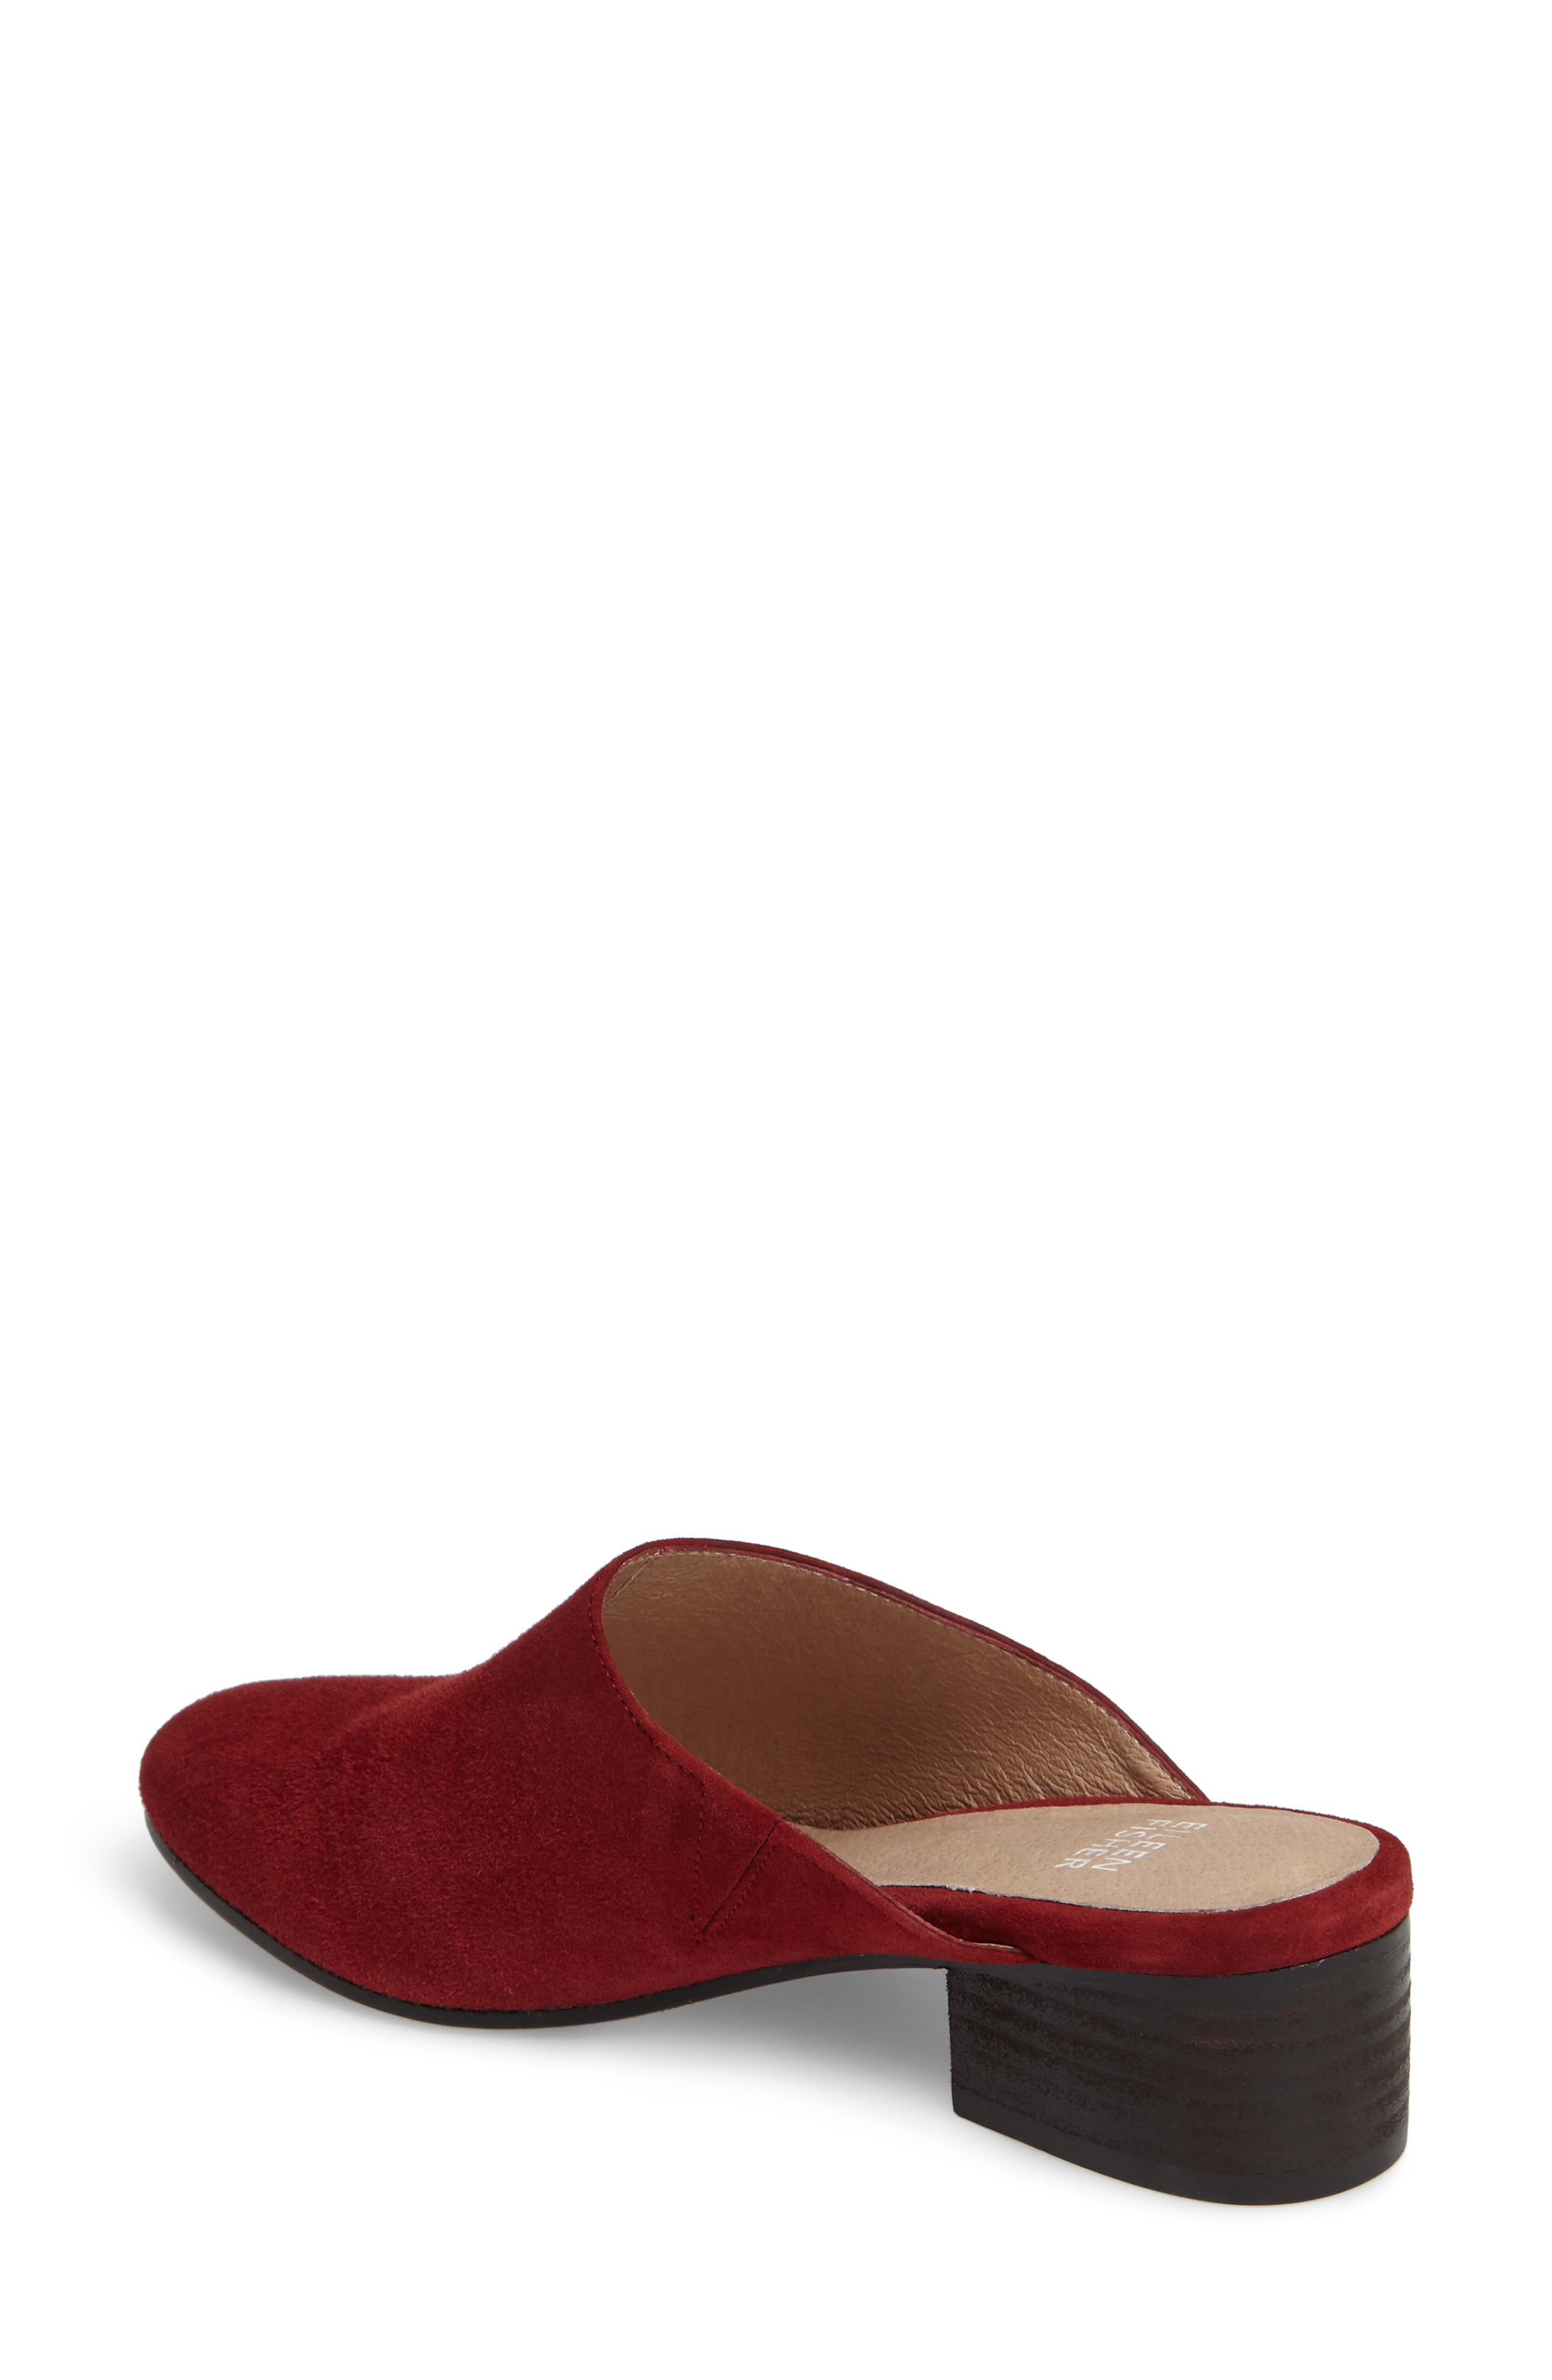 Alternate Image 2  - Eileen Fisher Silvia Mule (Women)